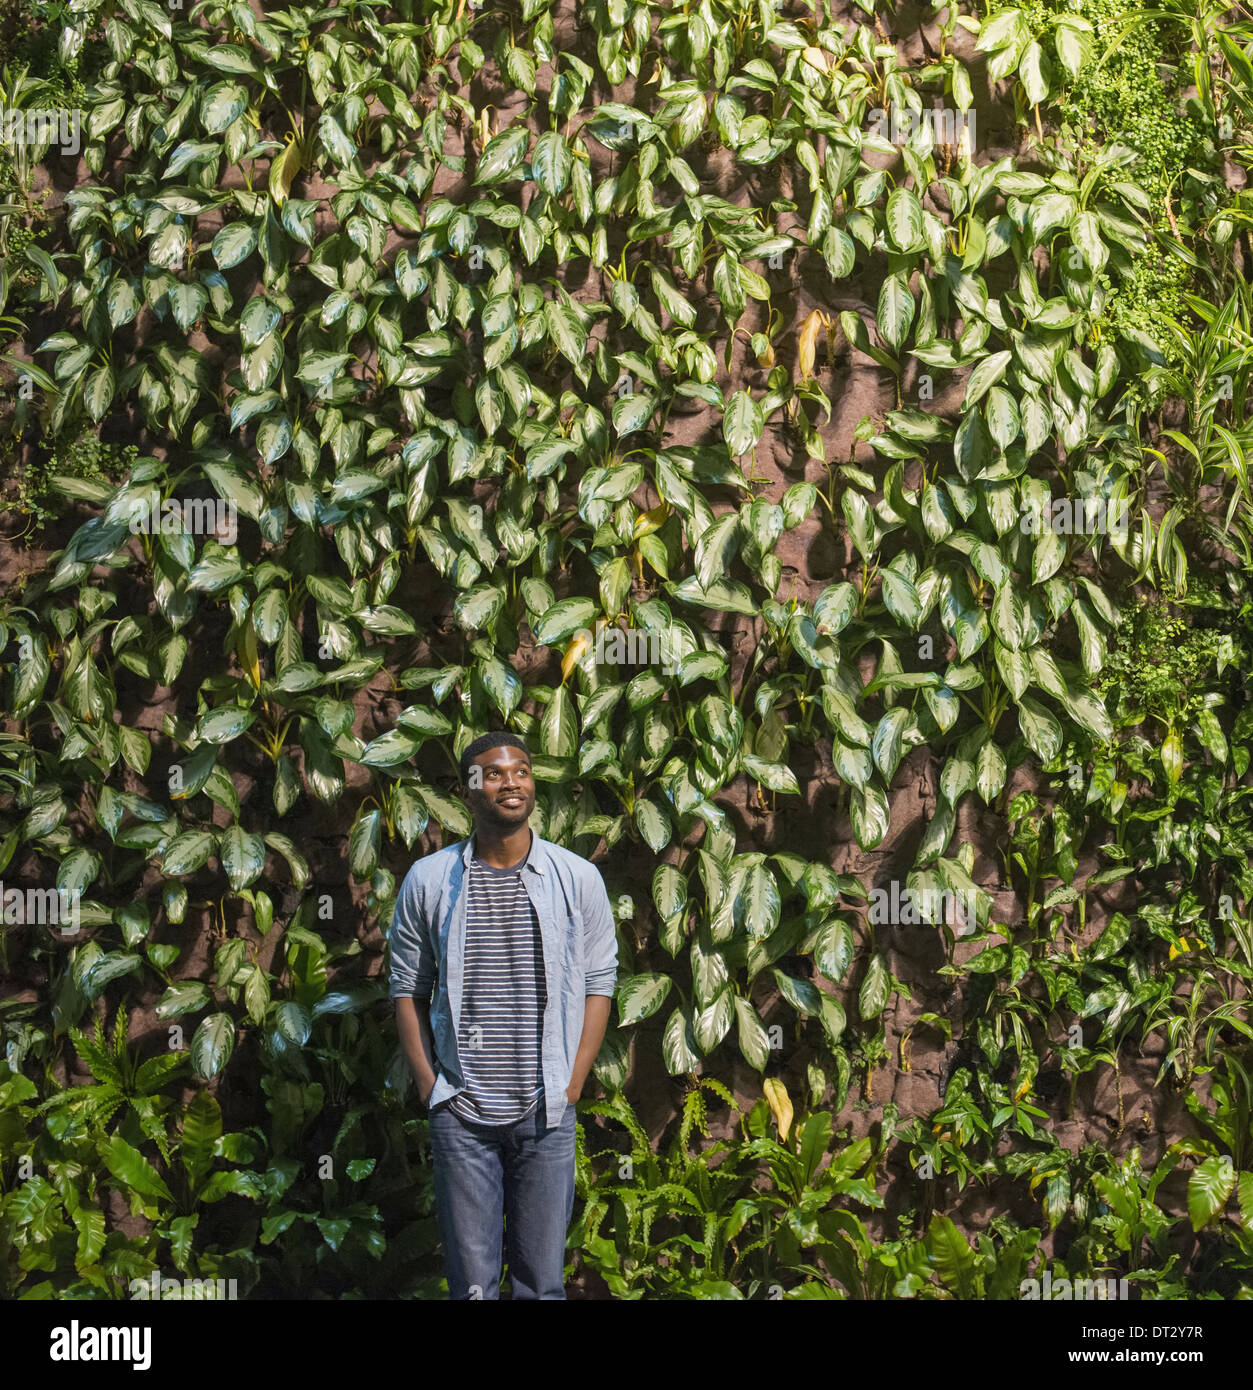 A man looking up at a high wall covered in climbing plants and foliage - Stock Image